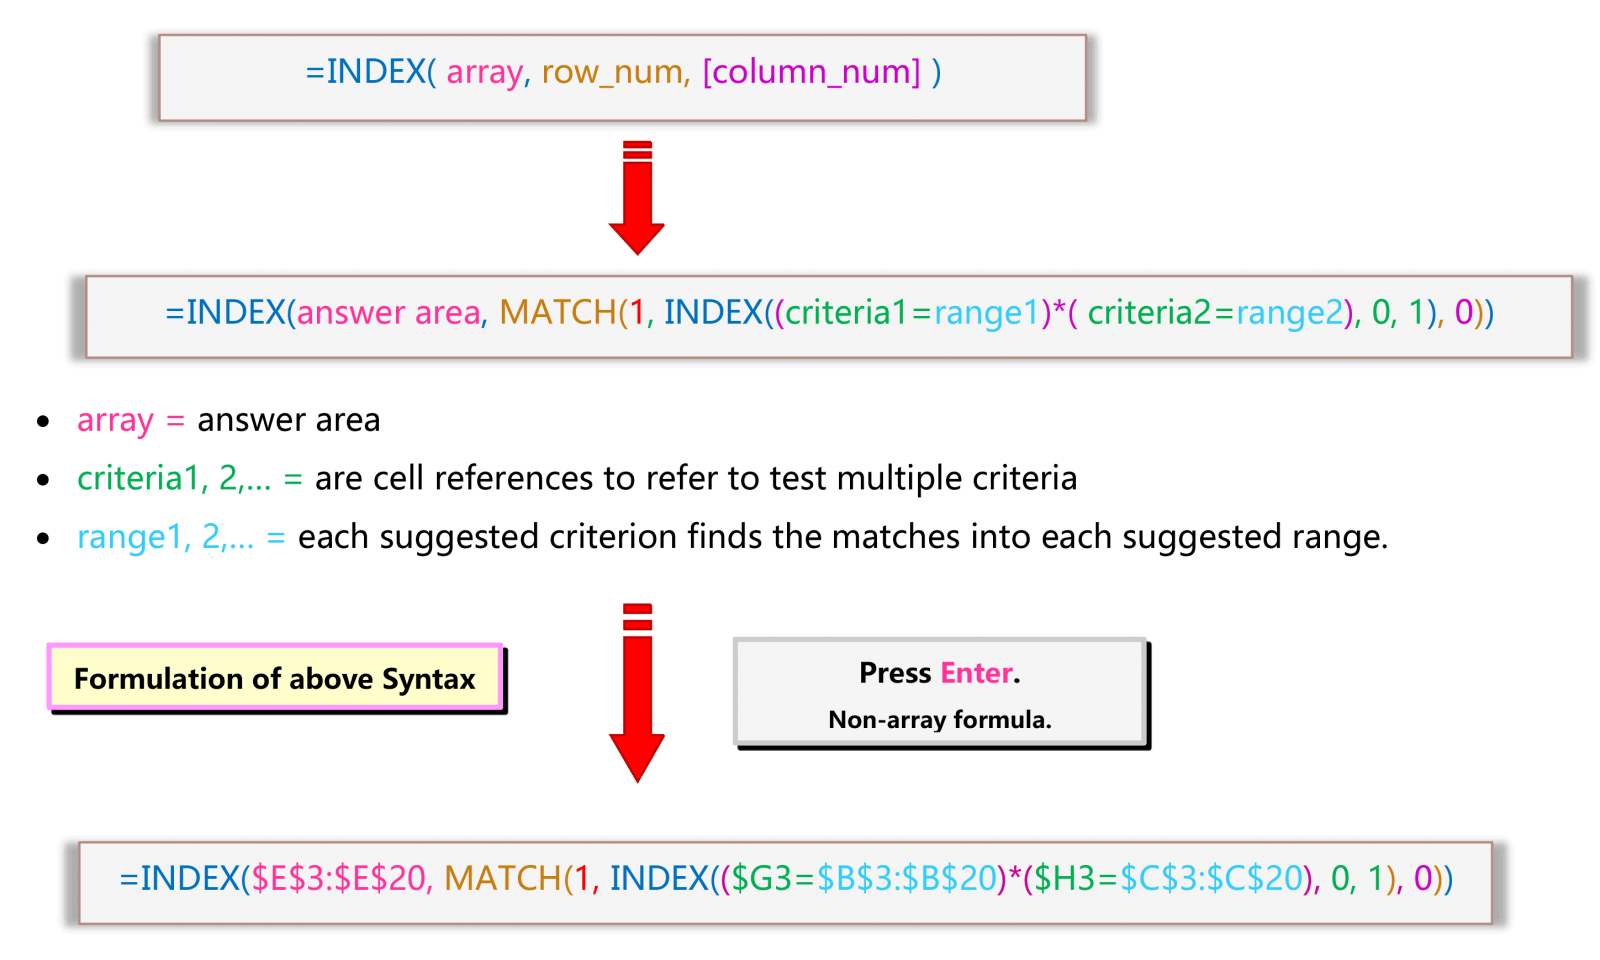 Syntax of Alternative of VLOOKUP Multiple Criteria in Excel with INDEX MATCH INDEX Multiple Criteria (Non-array Formula)